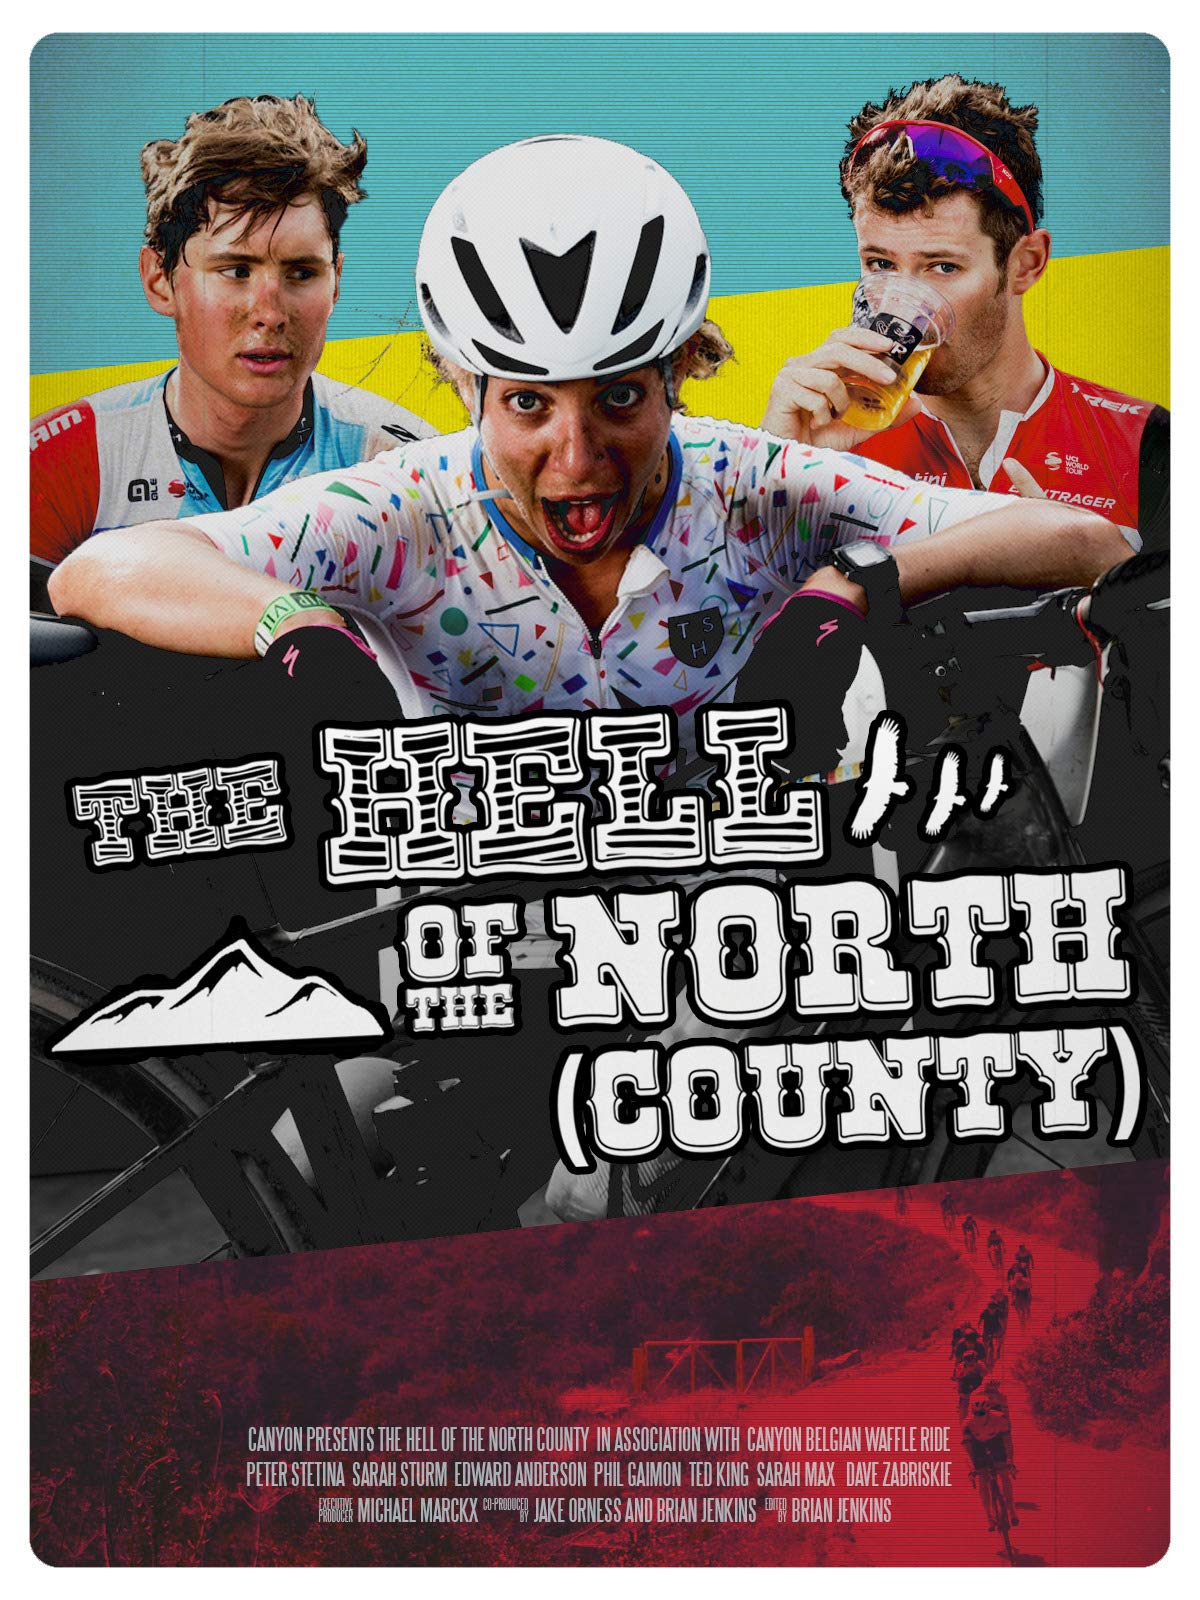 The Hell of the North (County)